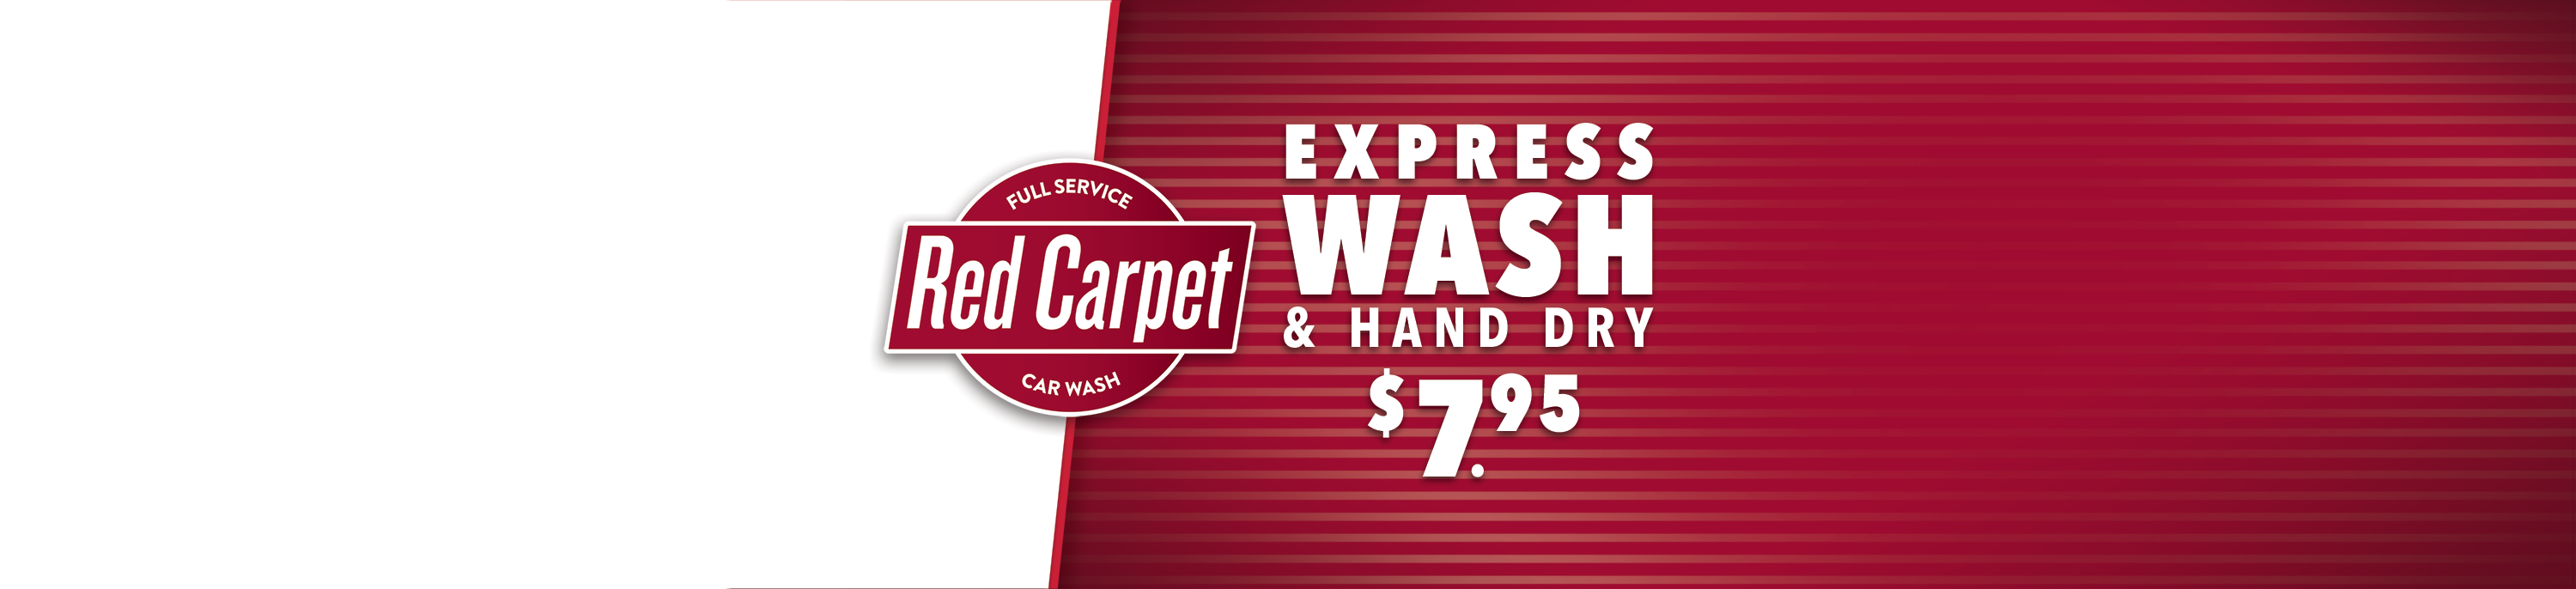 Express Wash & Hand Dry